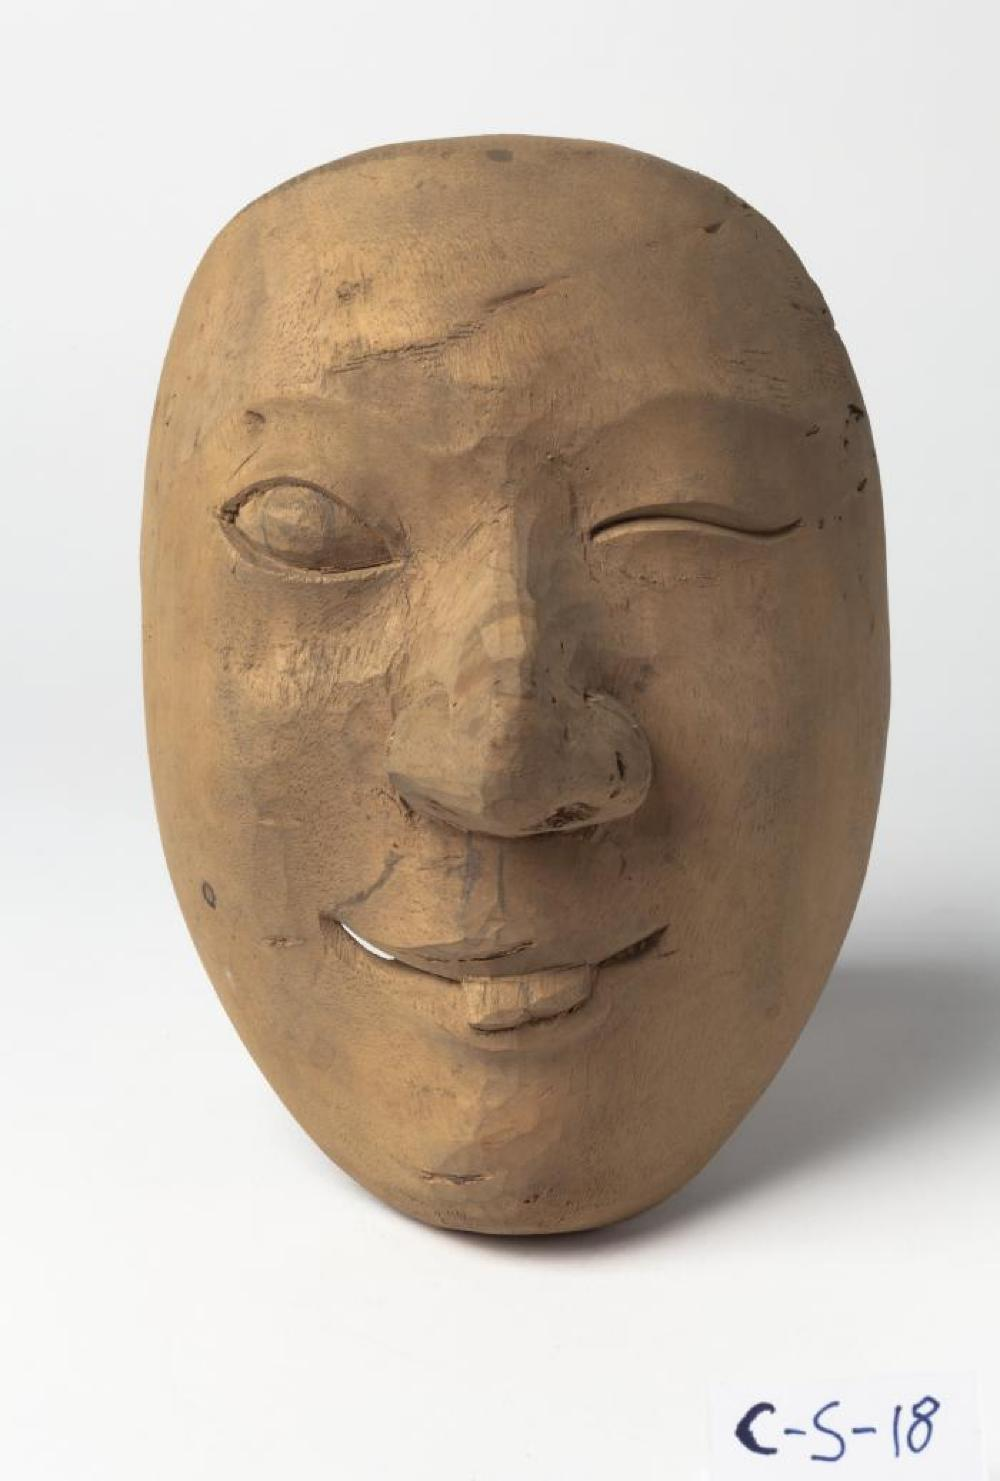 Balinese; Topeng Bondres Mask; 20th century; Wood; 7 x 5 x 3 in.; Collection of Isamu Noguchi. (Study Collection; Collectibles, C-S-18)